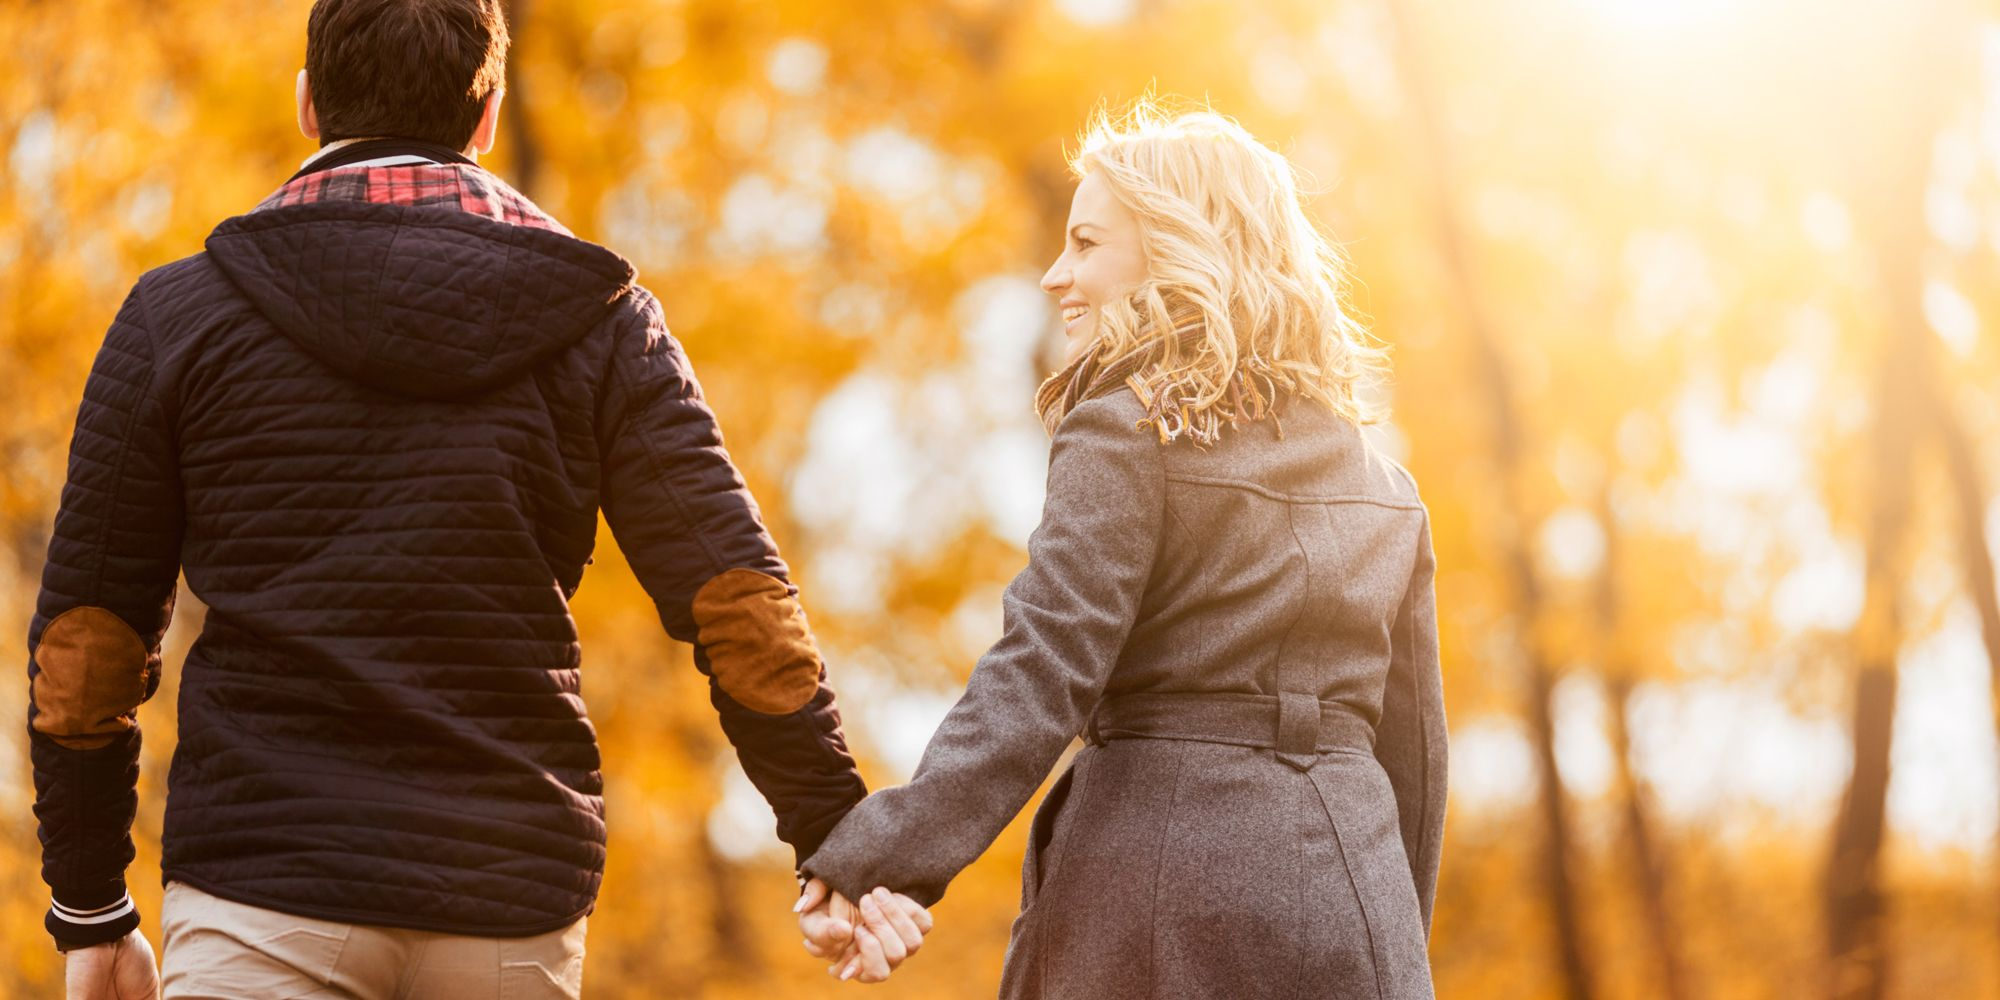 7 Fall Dates That Aren't as Romantic as They Sound